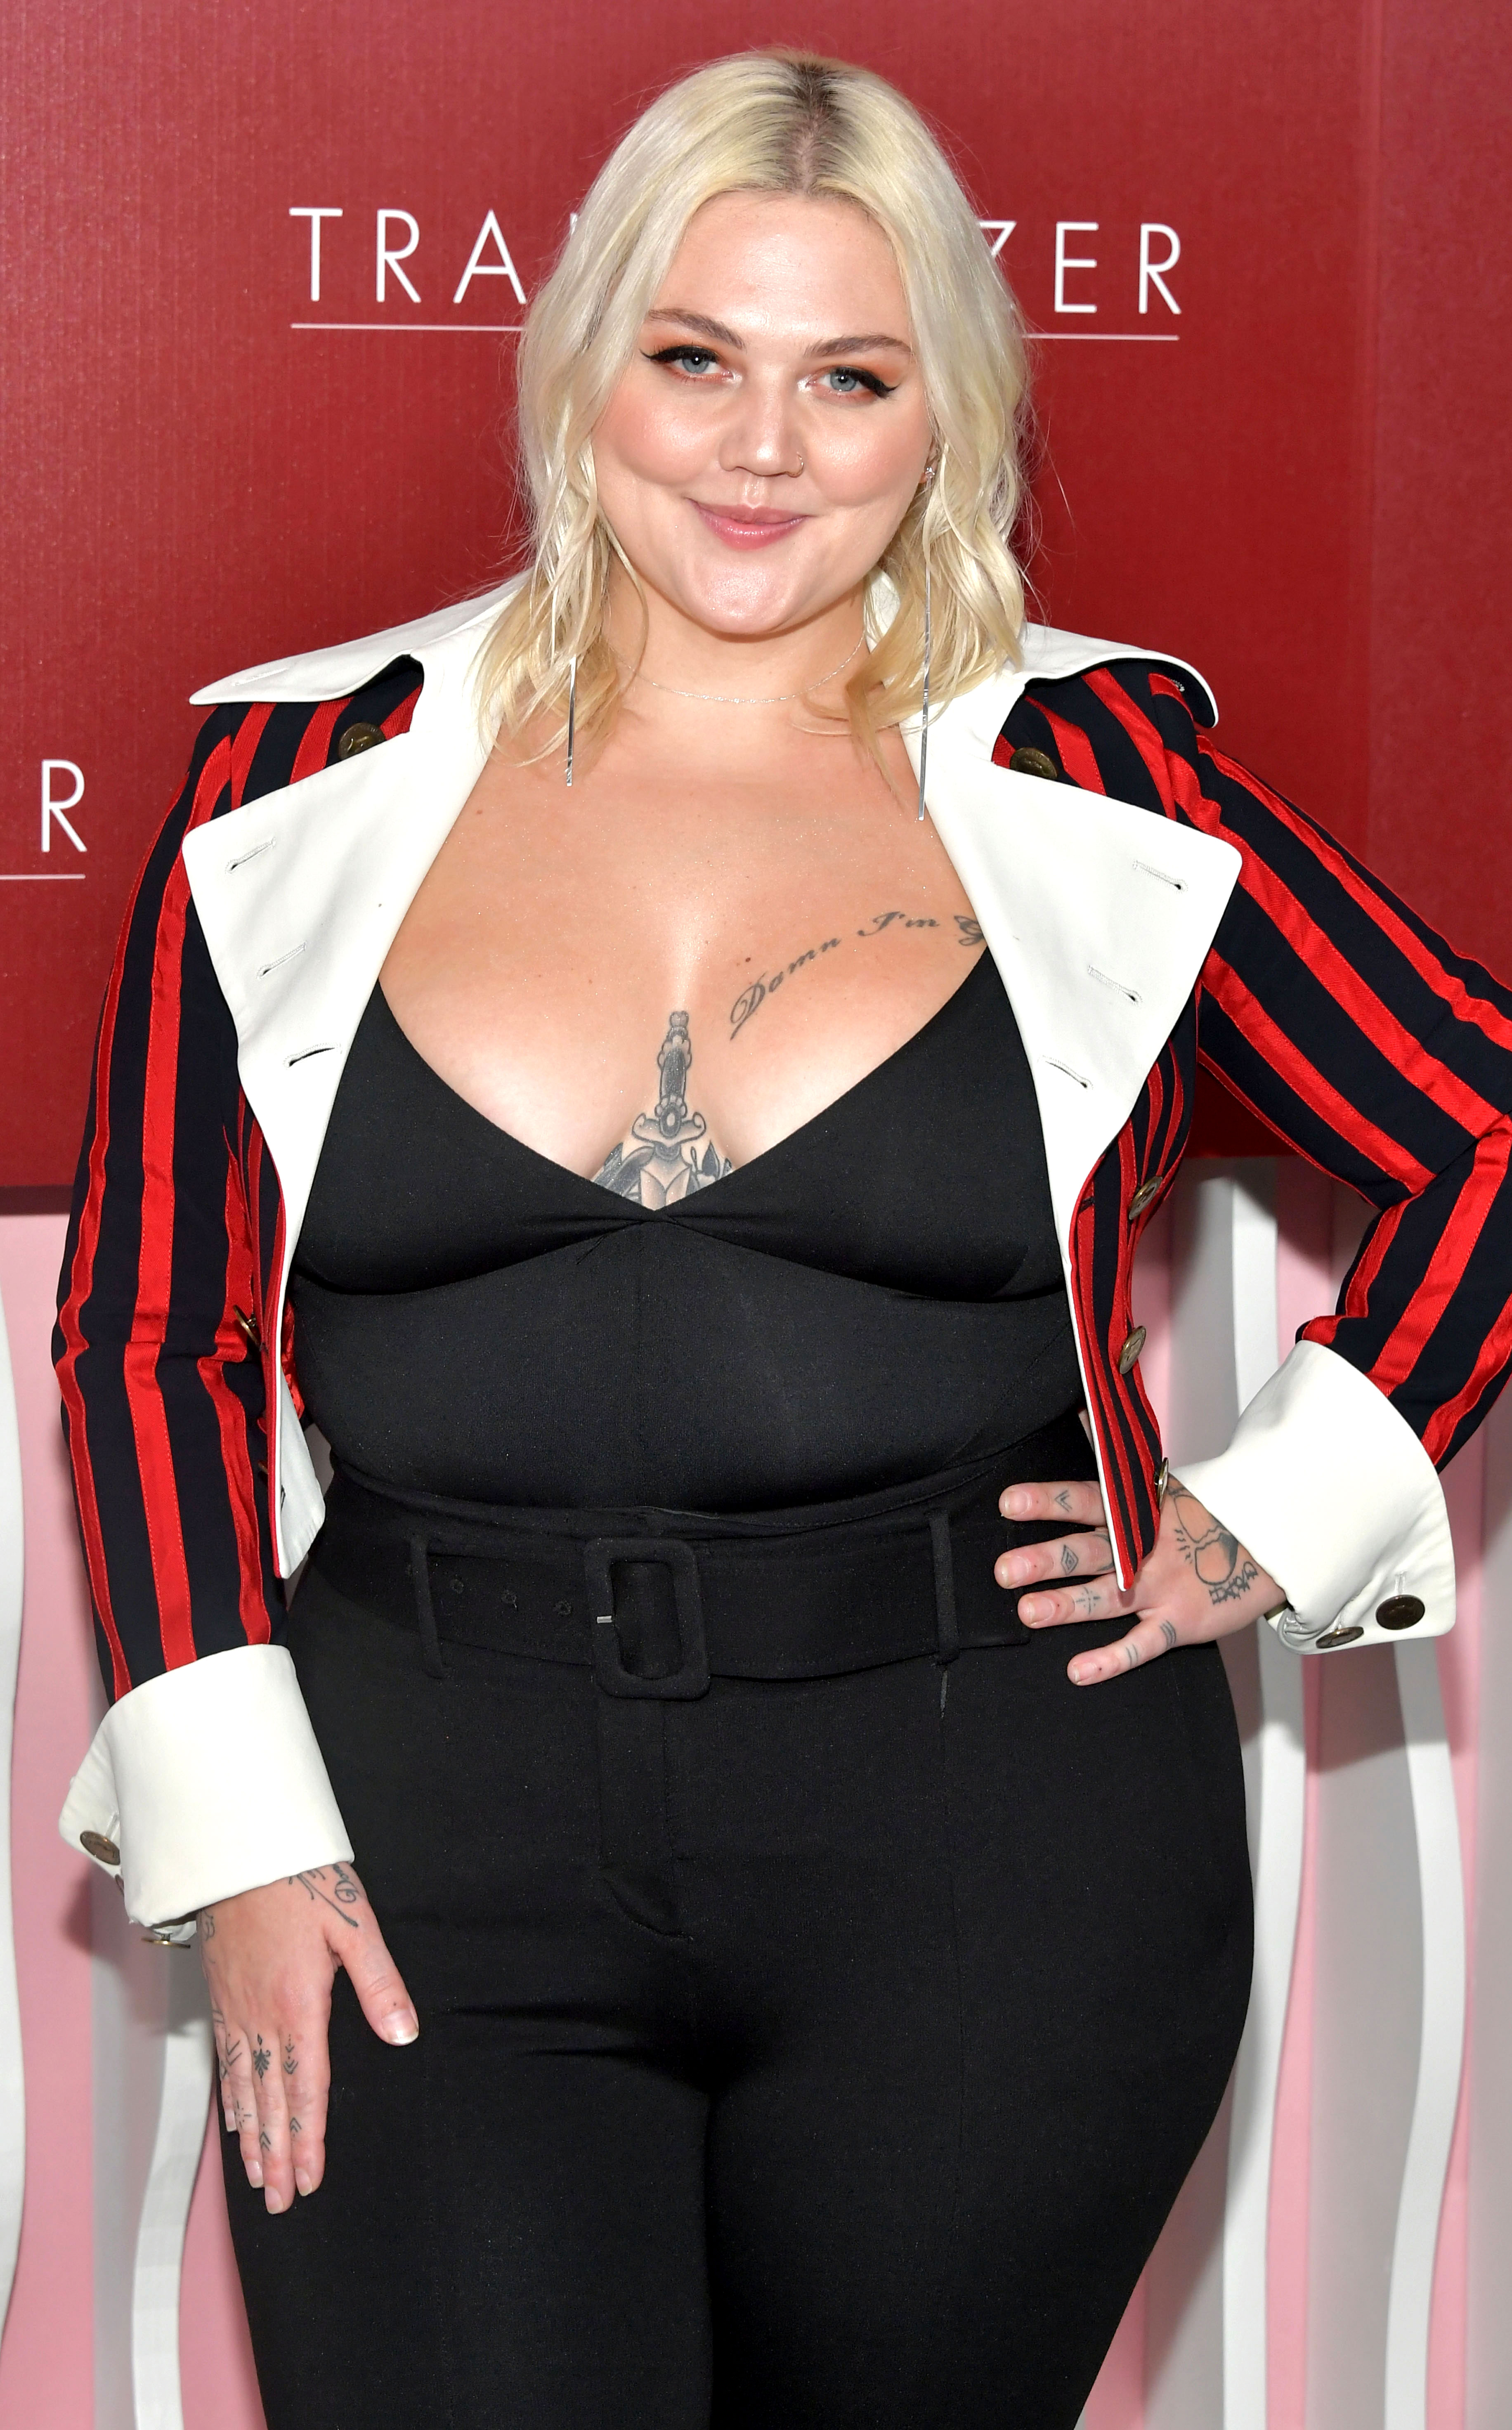 Elle King Is So Happy for Friend Miranda Lambert's Marriage - Elle King attends VH1 Trailblazer Honors at The Wilshire Ebell Theatre on February 20, 2019 in Los Angeles, California.